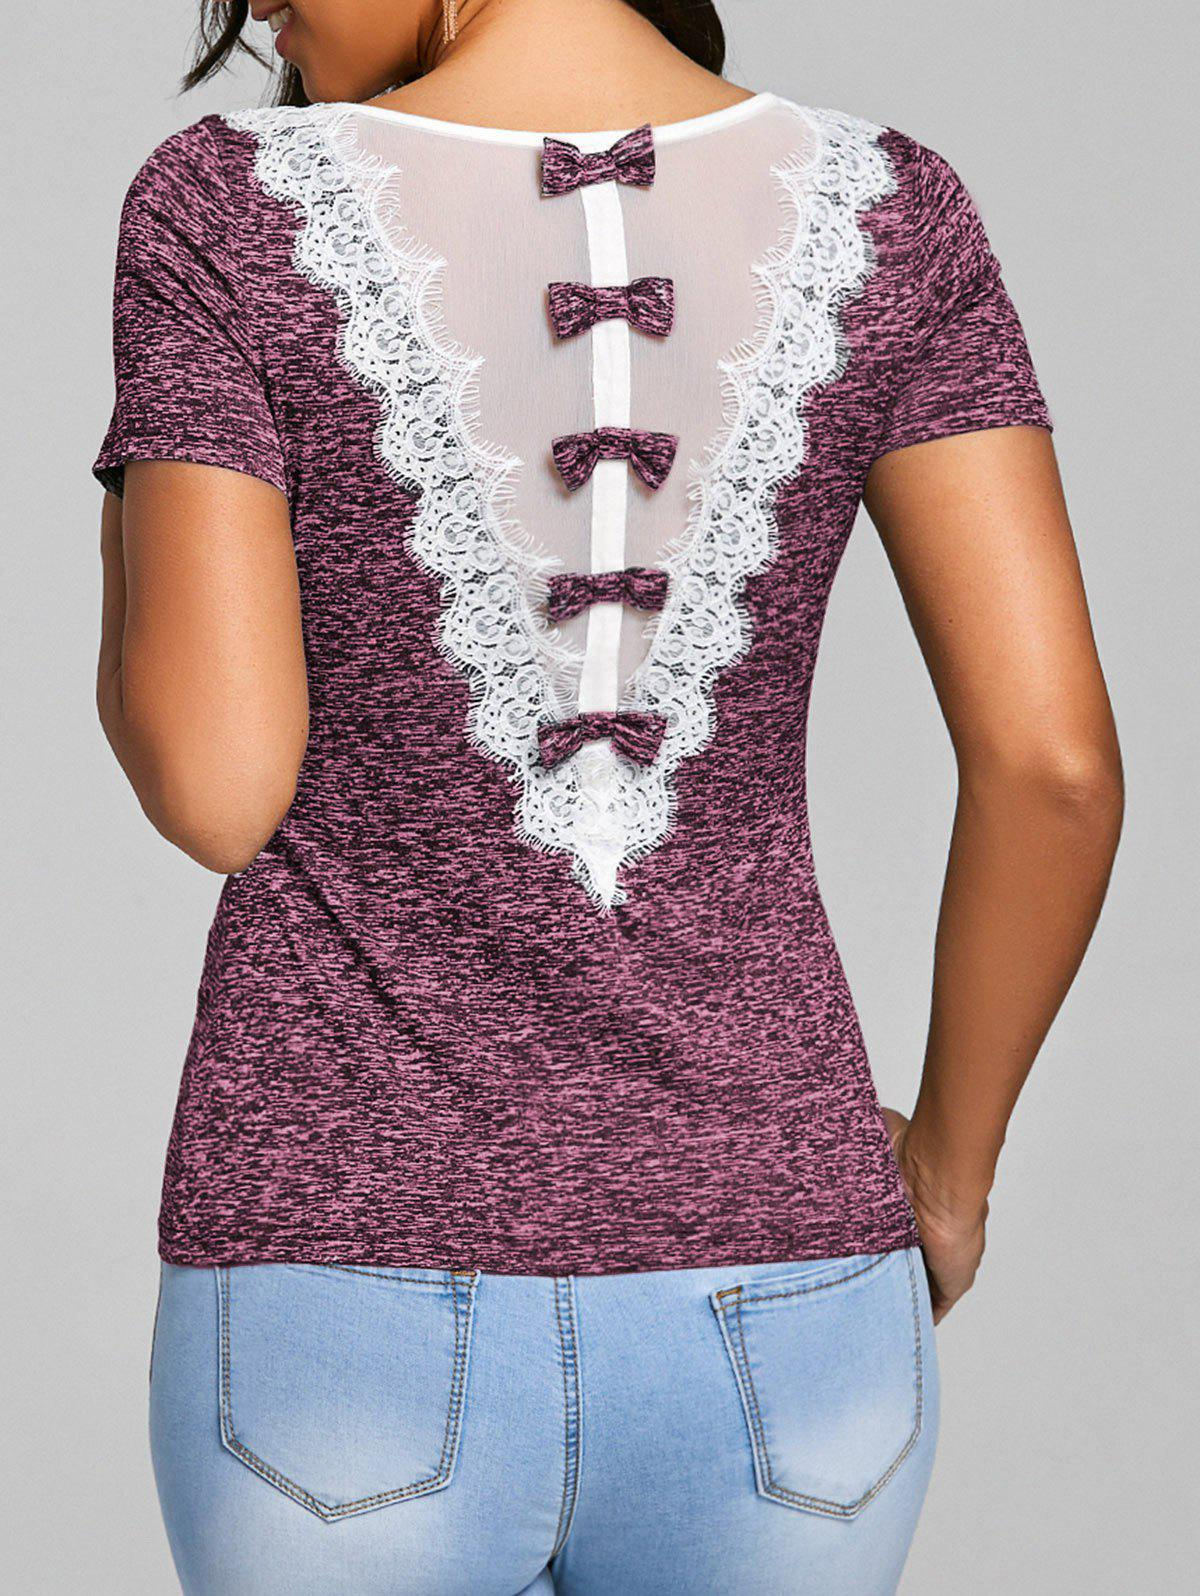 Bowknot Embellished Lace Trim Ringer T-shirt - PINK 2XL